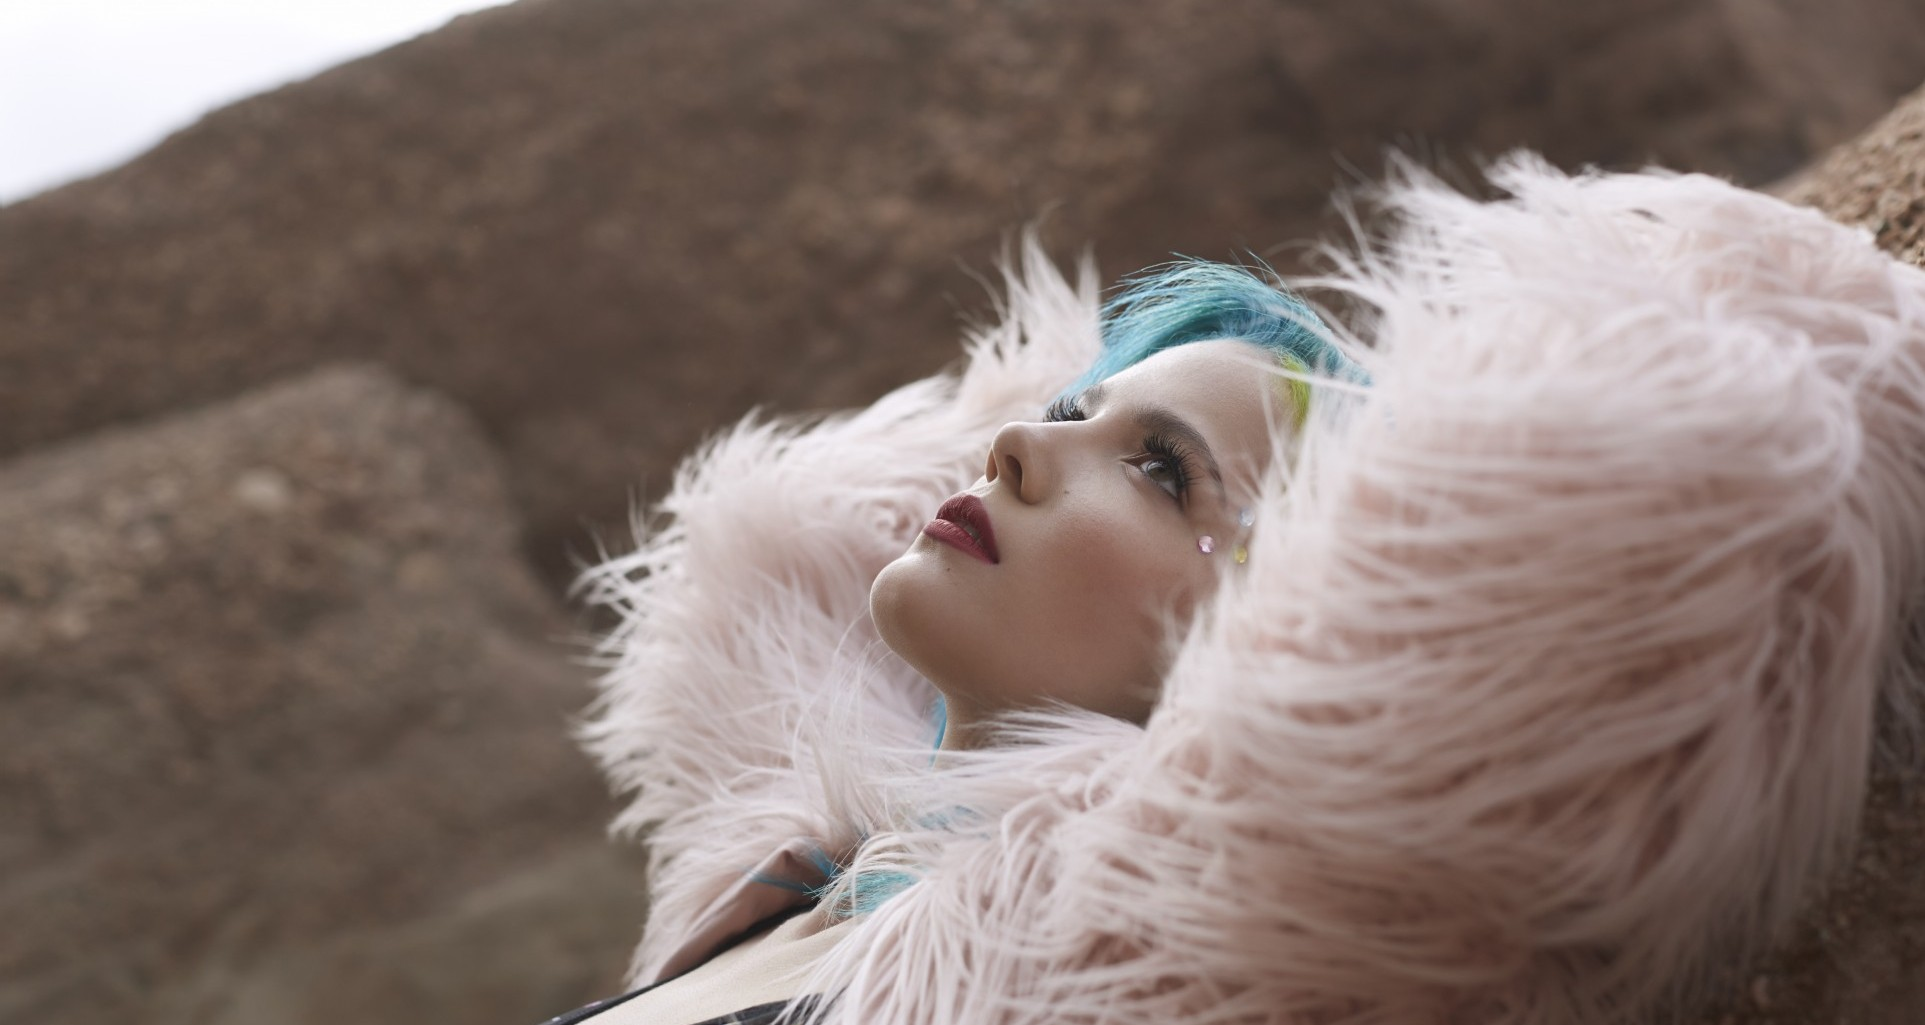 Halsey Scheduled To Perform On CBS Late Show With